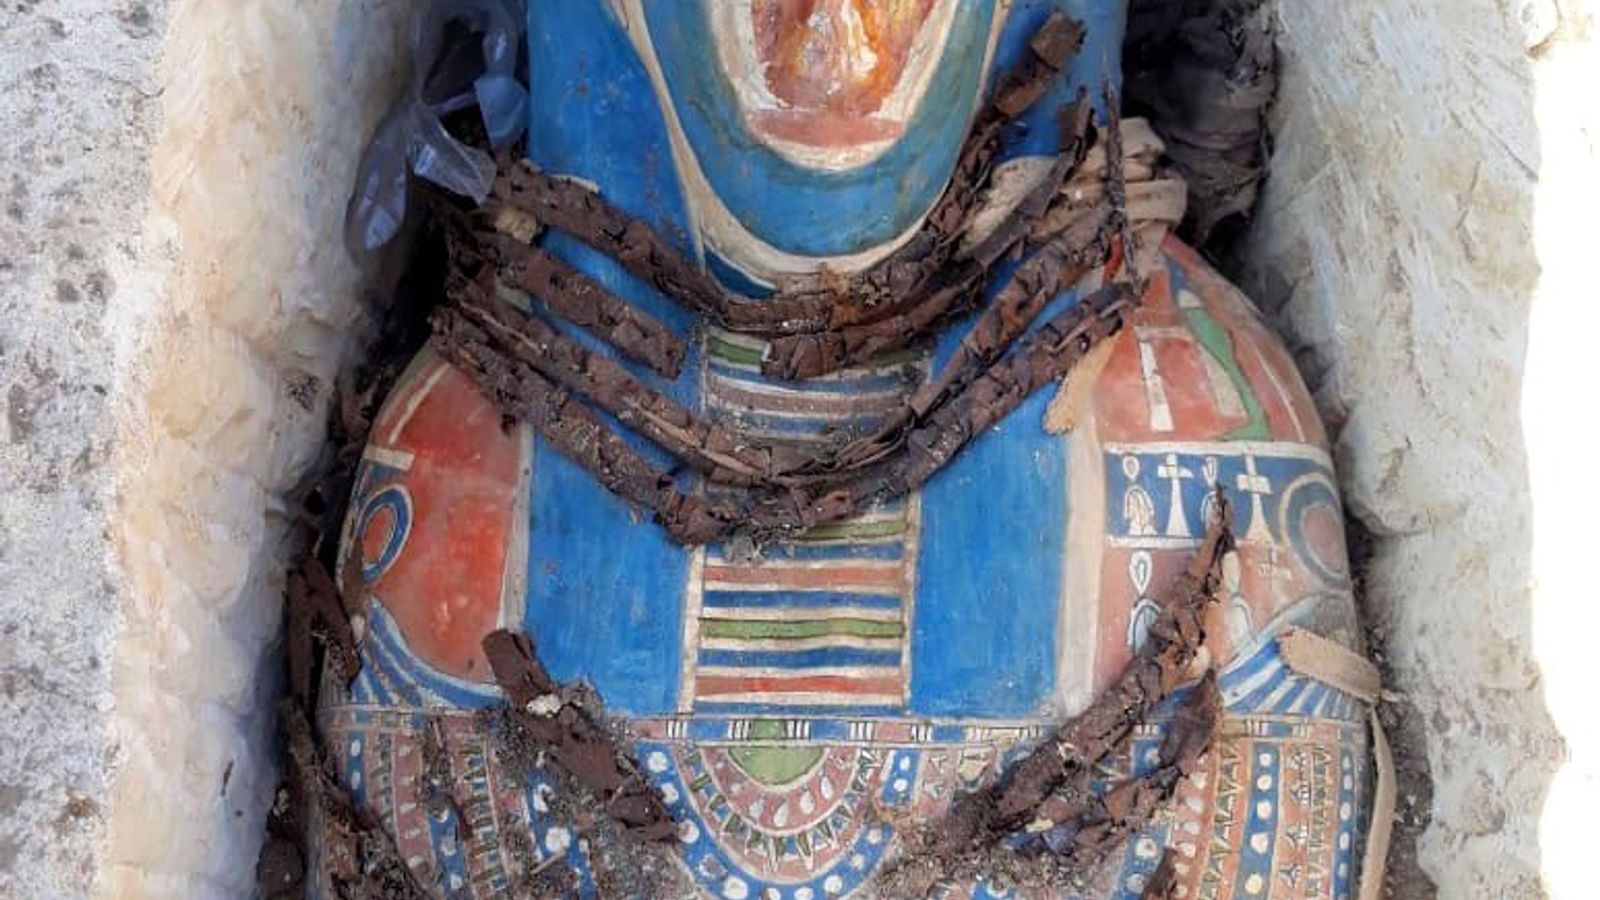 The recent discovery has revealed colourful mummies with decorations that have survived 2,500 years.